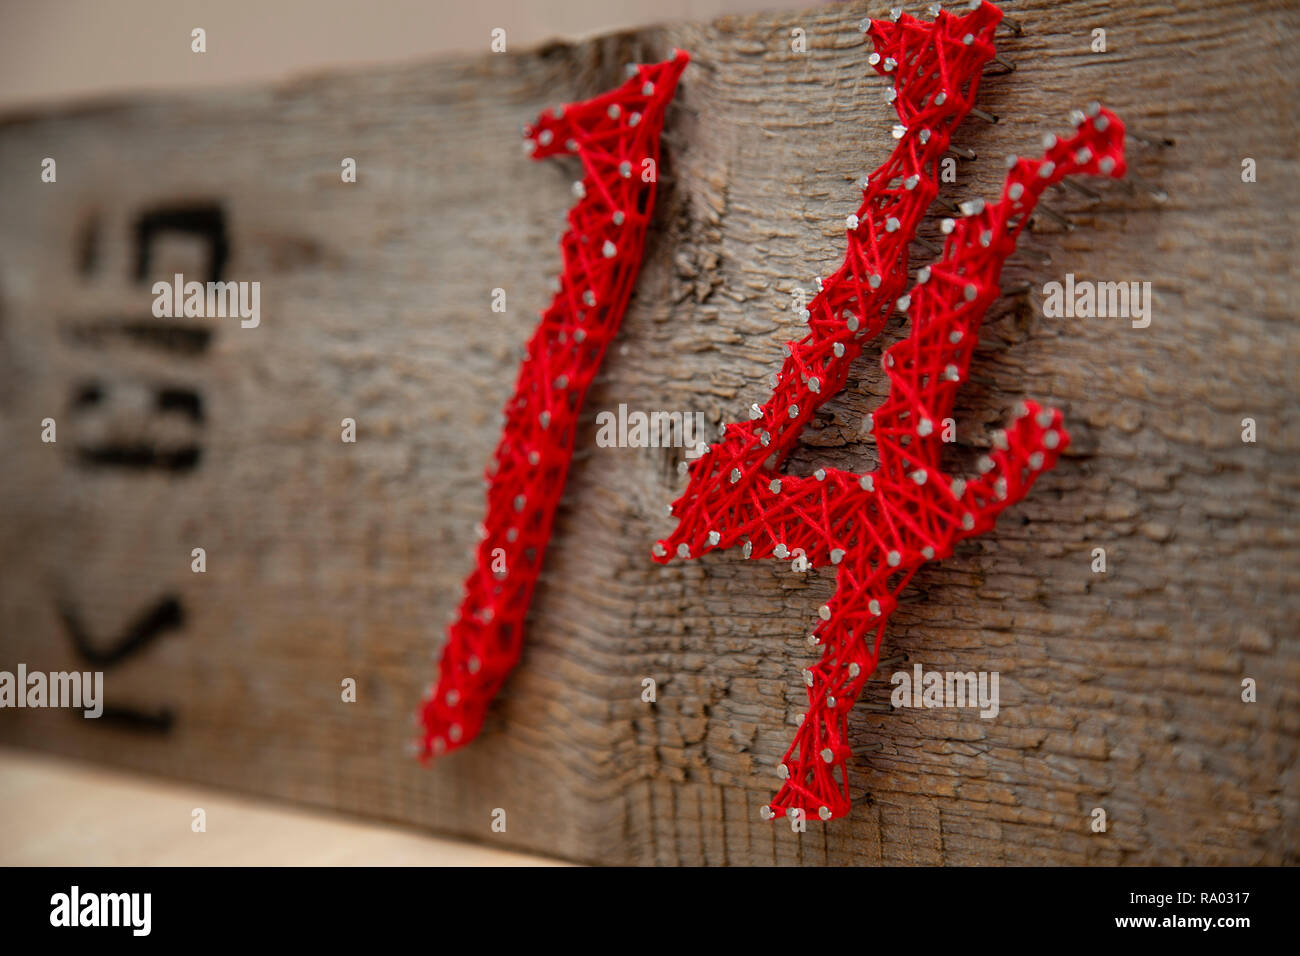 number 14 in red threads on an old dry board - Stock Image